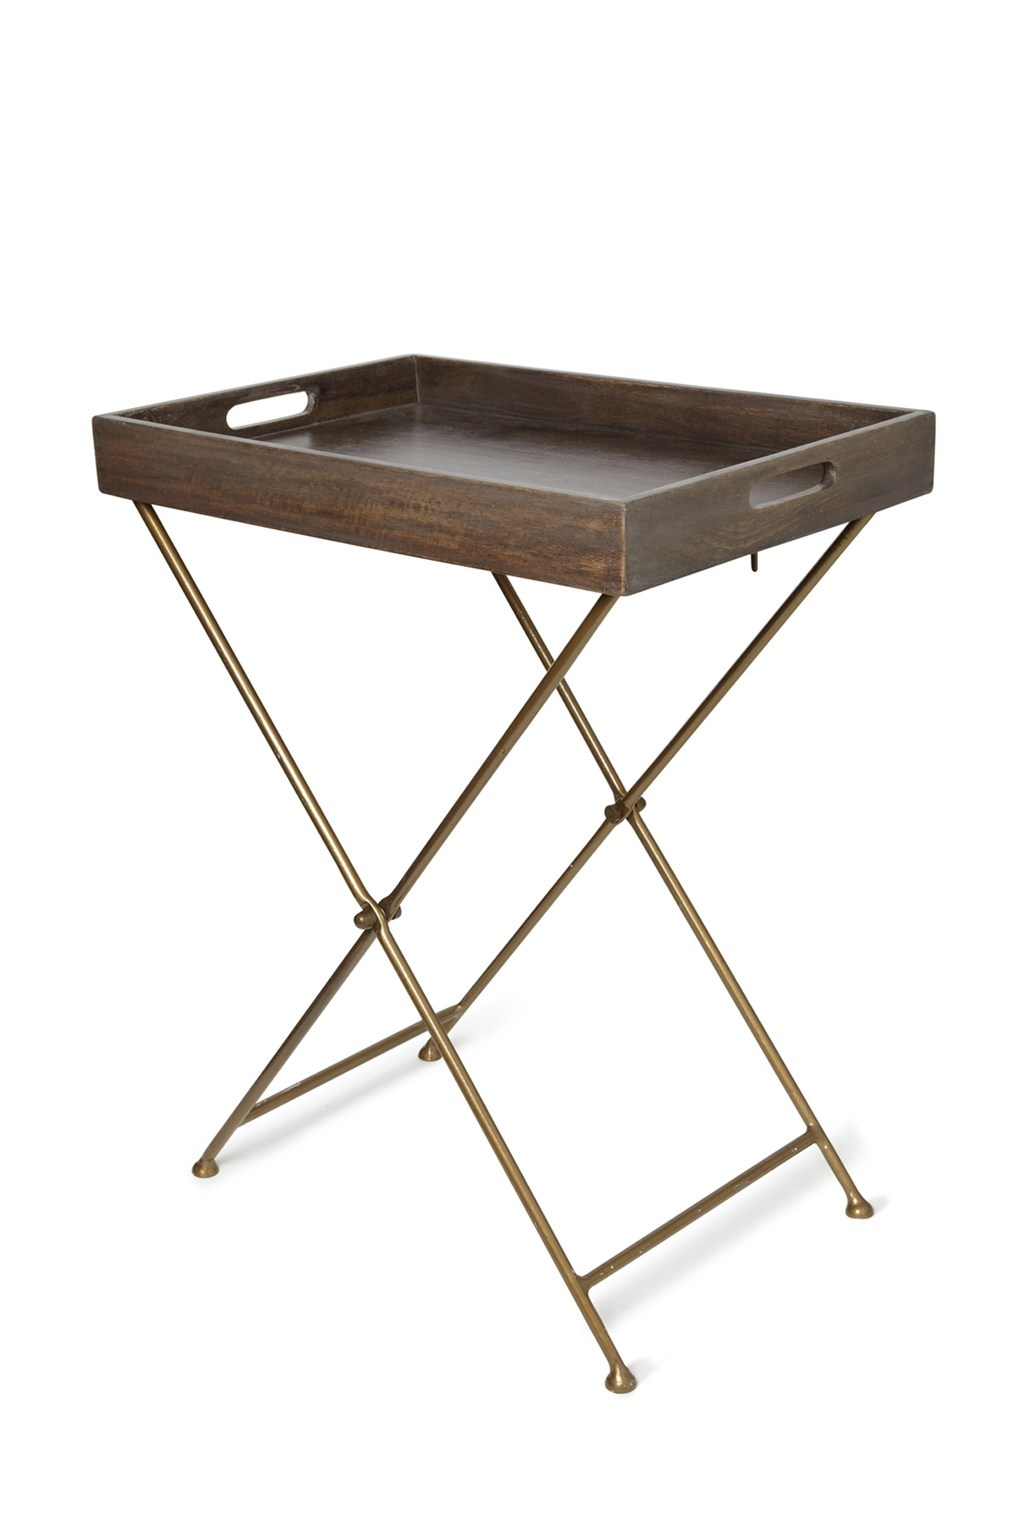 Wooden Tray Table  Home Old Season  French Connection. Buffet Table Ideas. Ikea Desk Wood. Backgammon Table. Steamer Trunk Desk. Folding Conference Table. Koala Care Changing Table. Table Pads Custom. Desk Height Cabinets